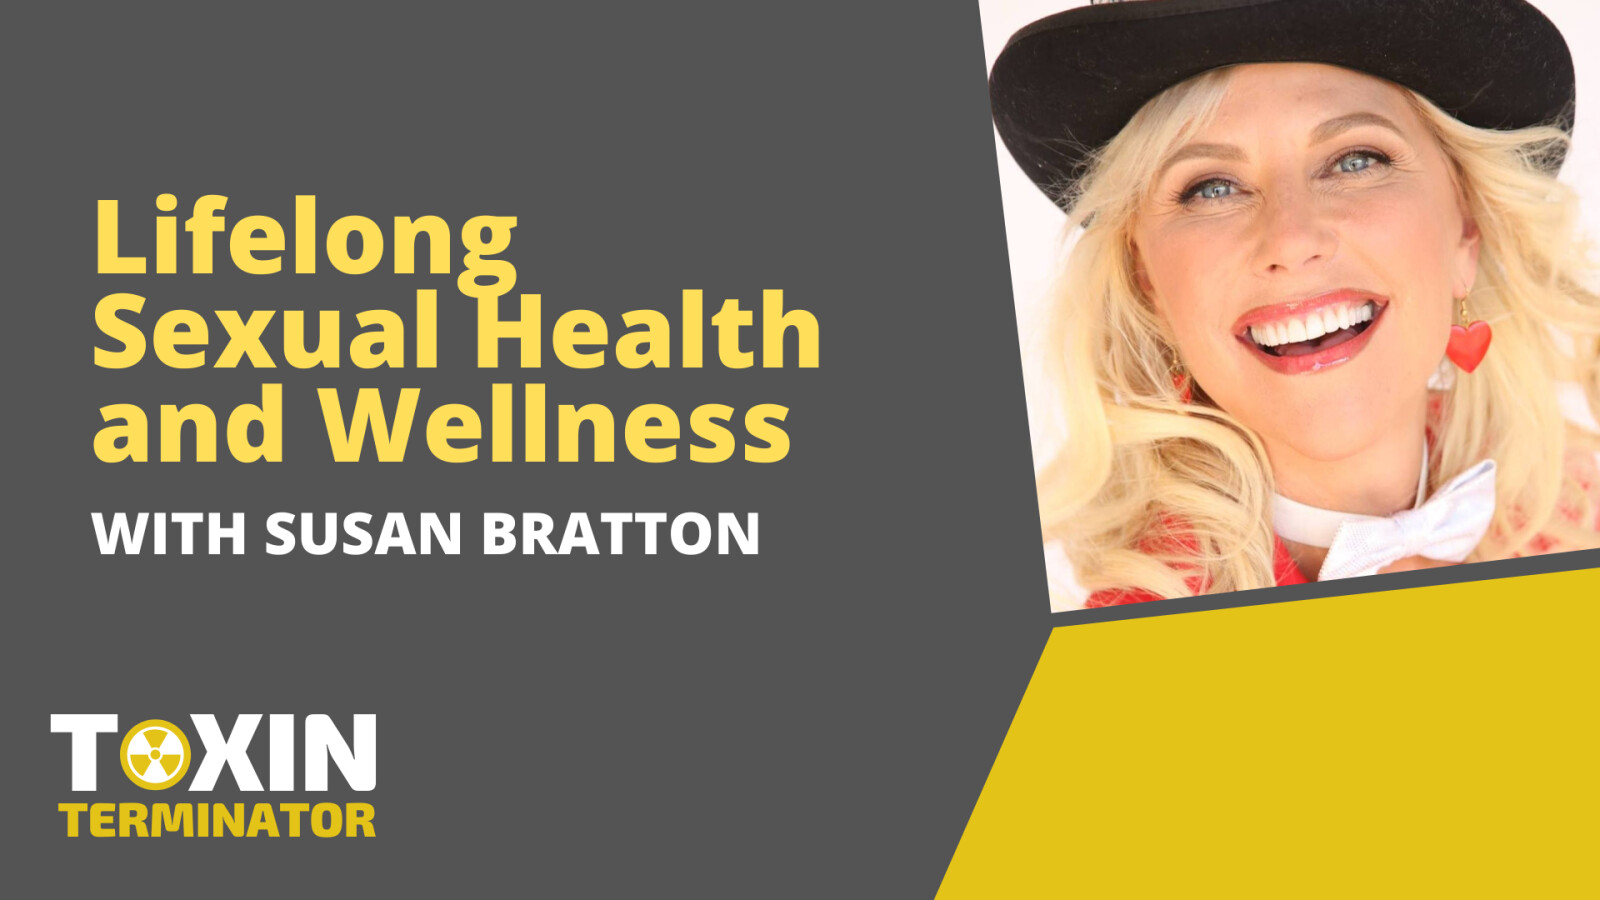 Lifelong Sexual Health and Wellness with Susan Bratton